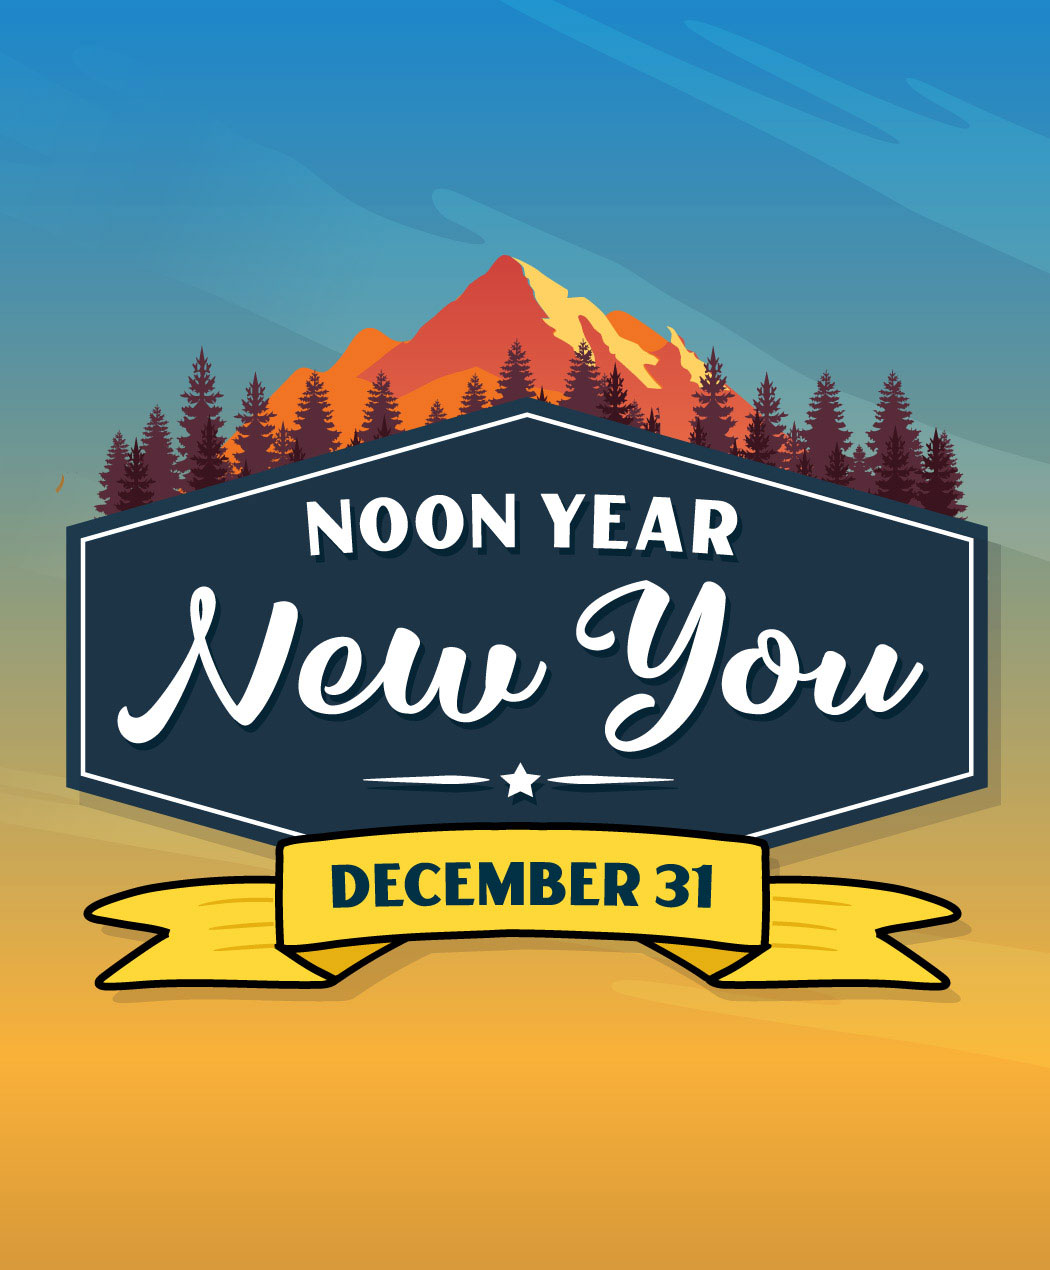 Noon Year, New You